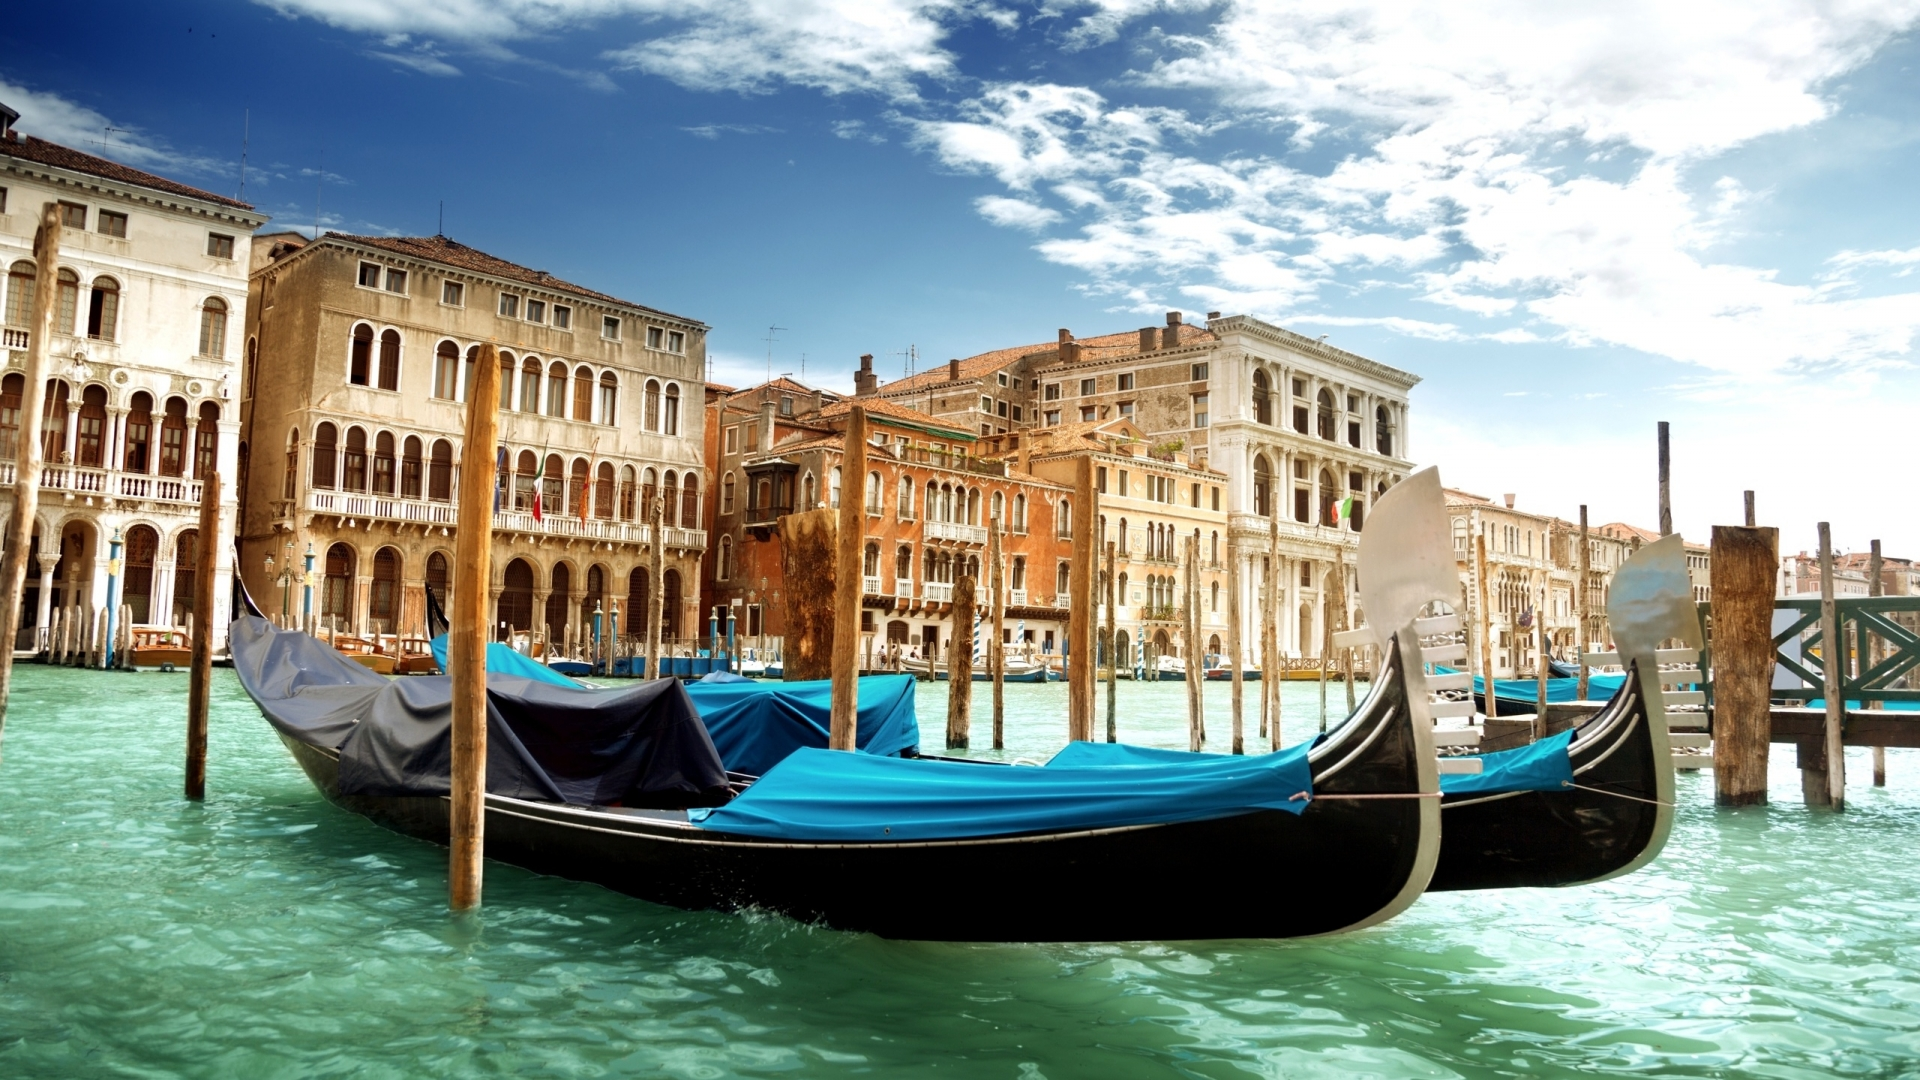 http://dallatours.com/wp-content/uploads/2016/02/venice-gondola-sunset-wallpaper-4.jpg